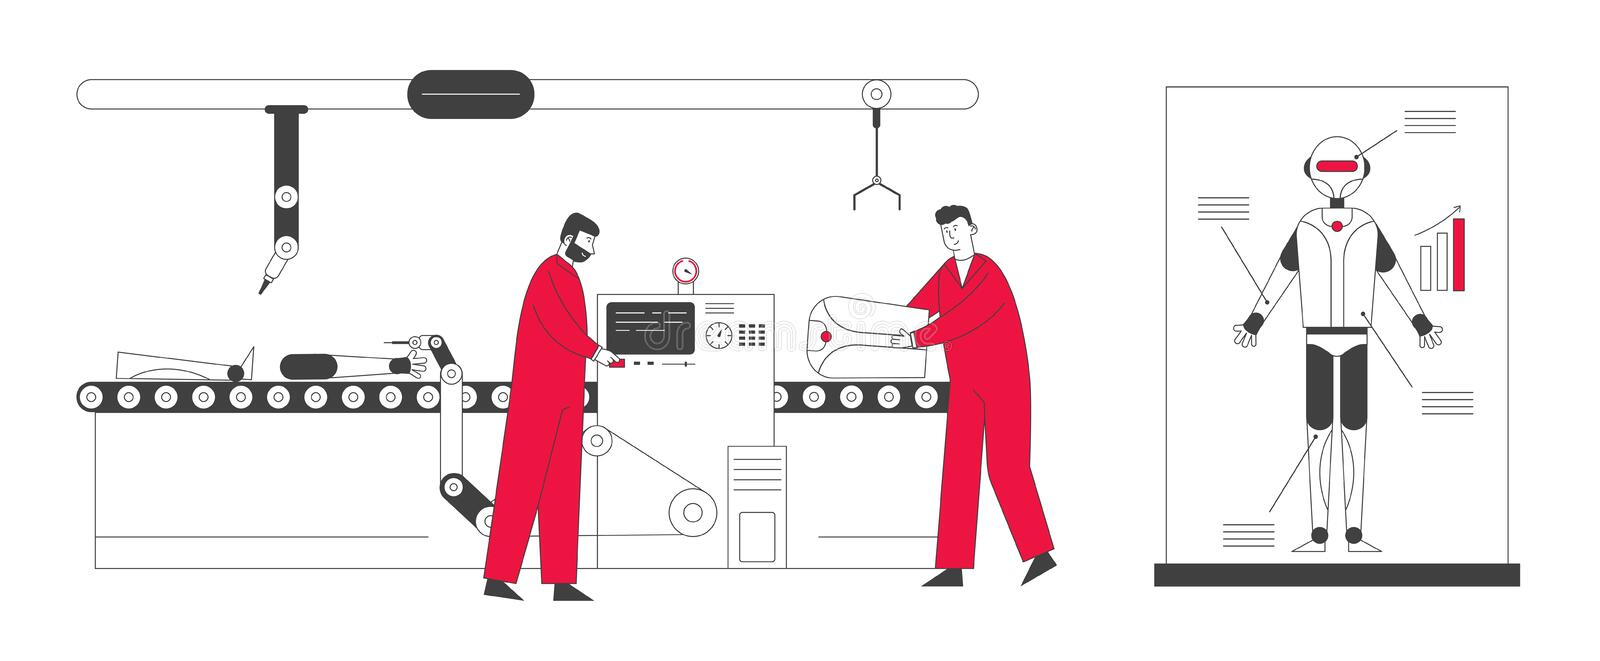 Cyborg Creating Process in Laboratory. Engineers Characters Set Up Parts of Robot on Conveyor Belt. Artificial Intelligence Develop and Assembly Technology stock illustration